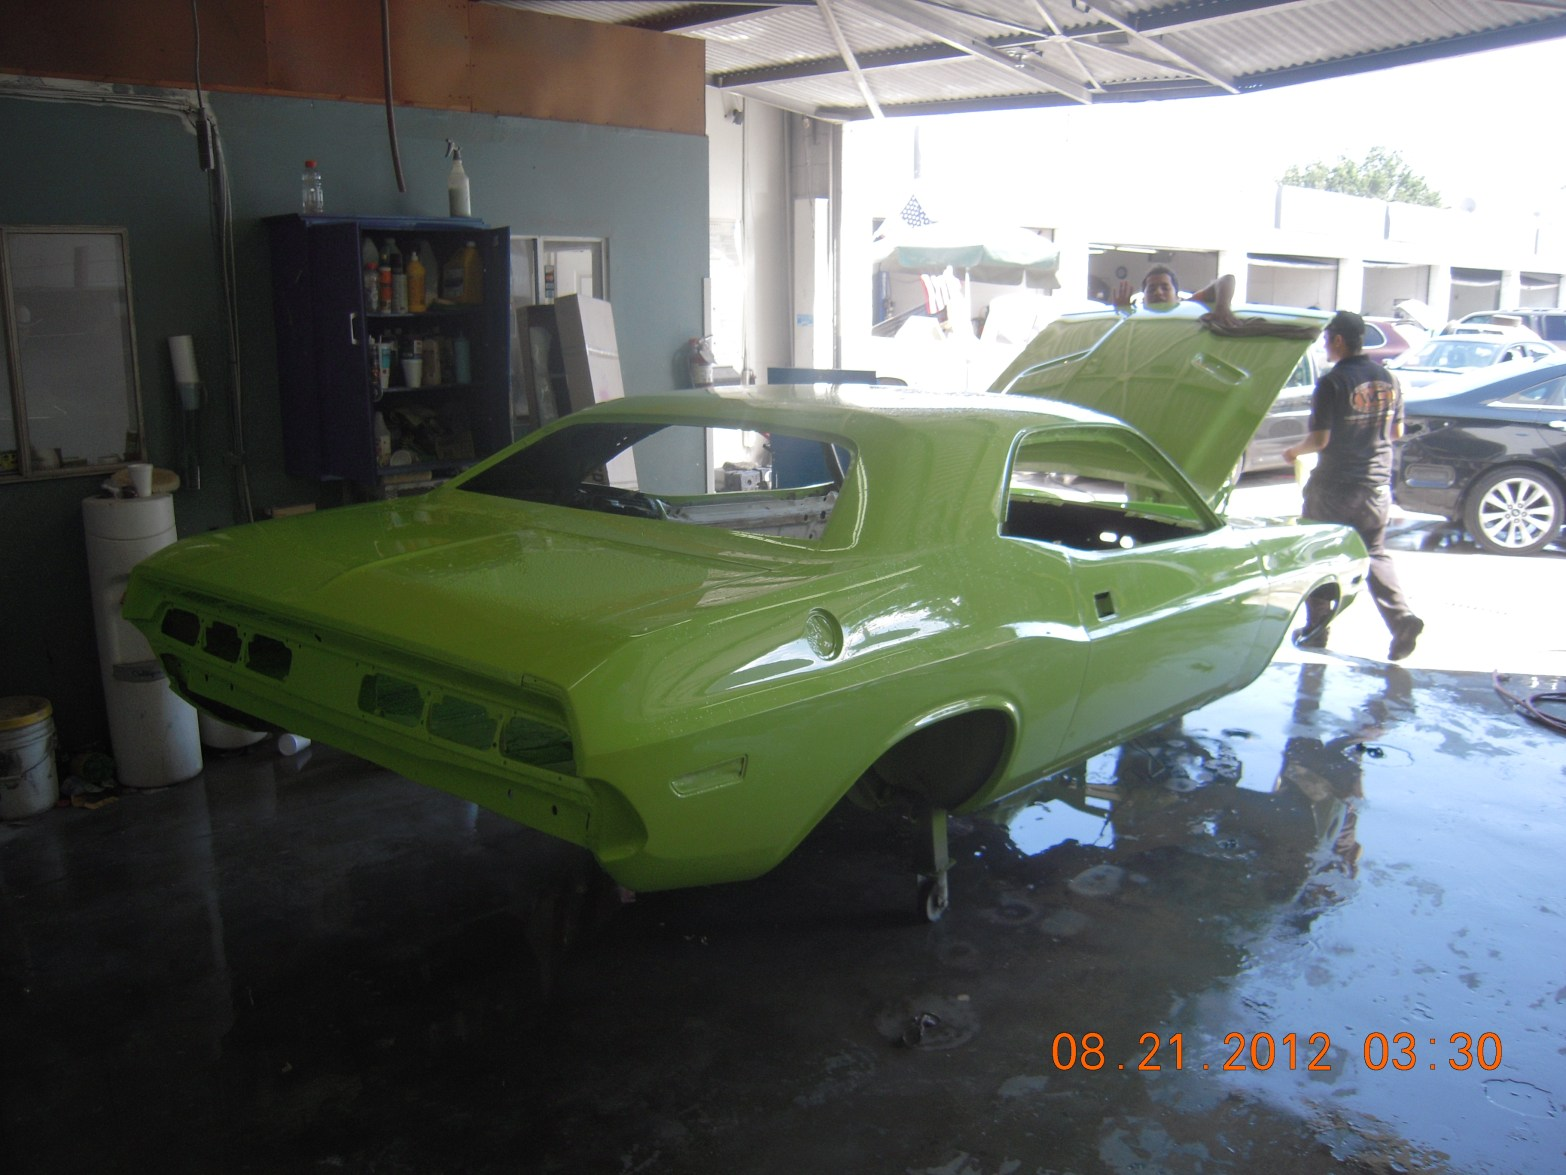 west-coast-body-and-paint-sublime-green-1971-dodge-challenger-29